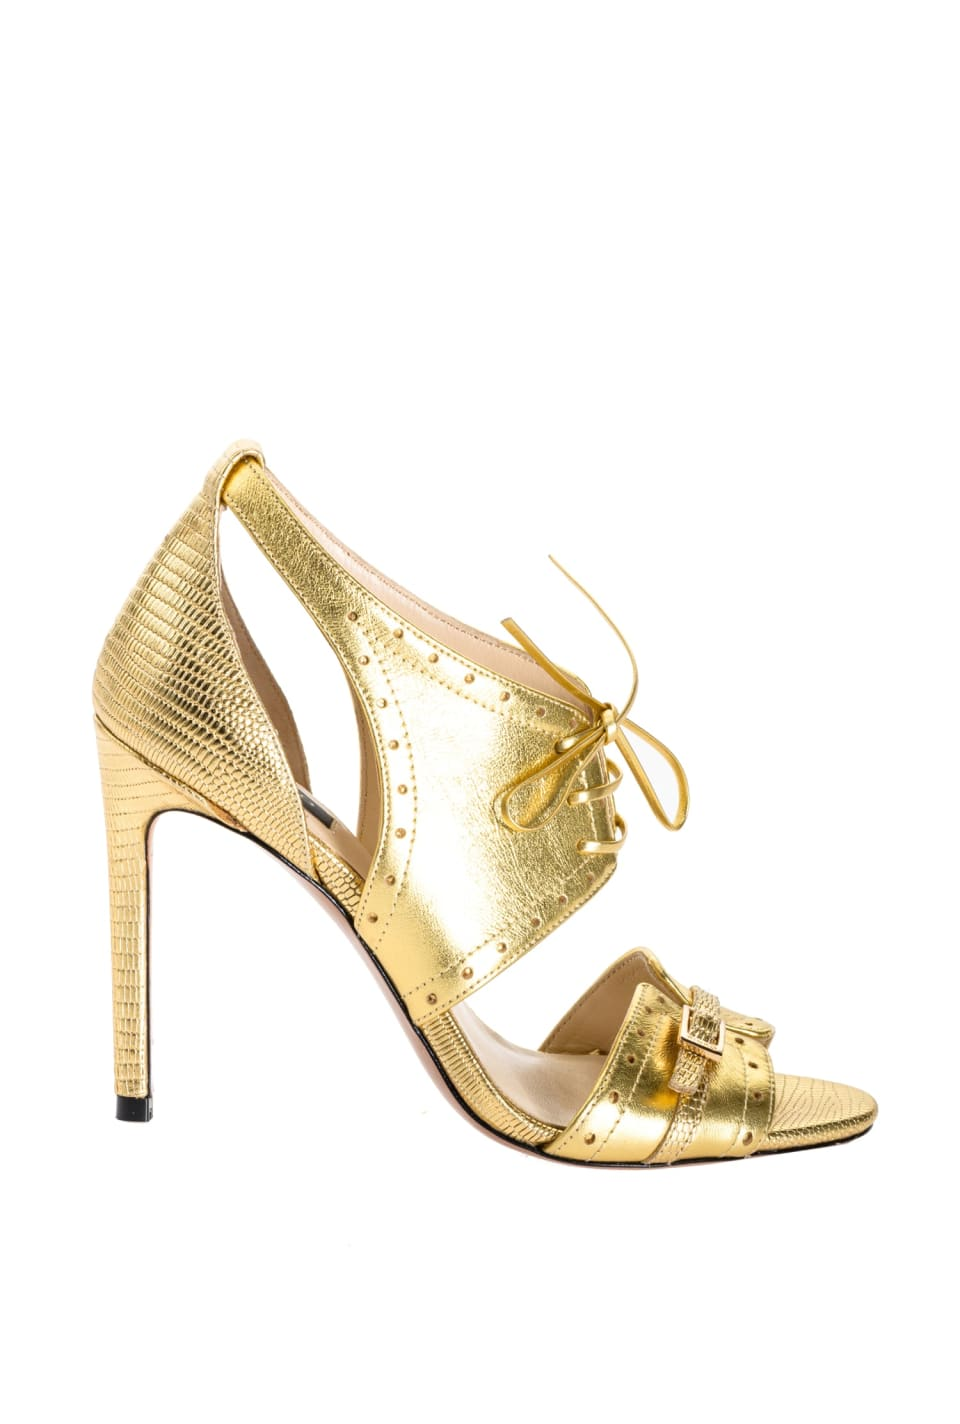 Sandals in gold laminated leather